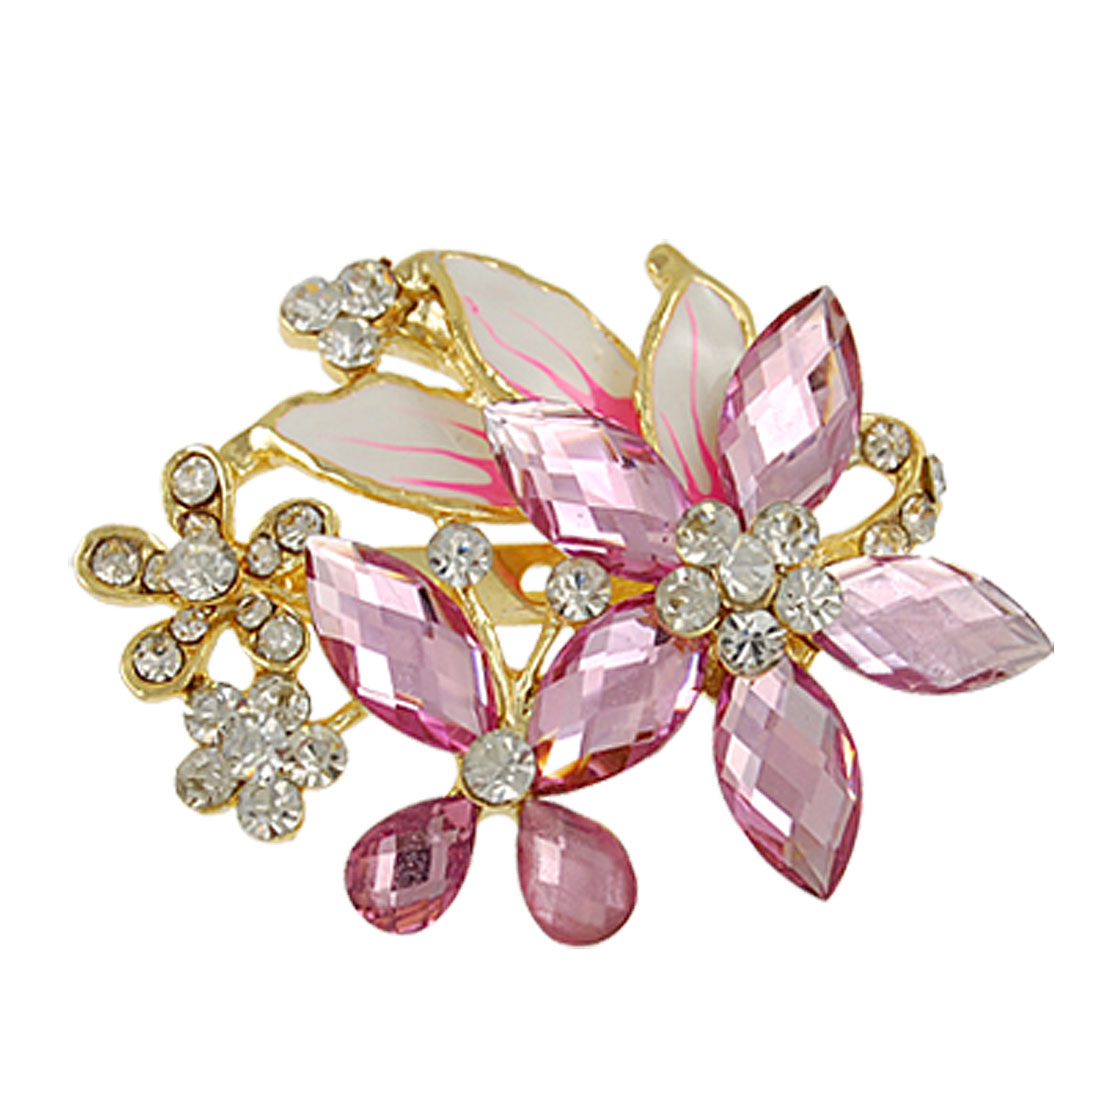 Pink Crystal Floral Rhinestone Inlaid Safety Pin Brooch for Lady